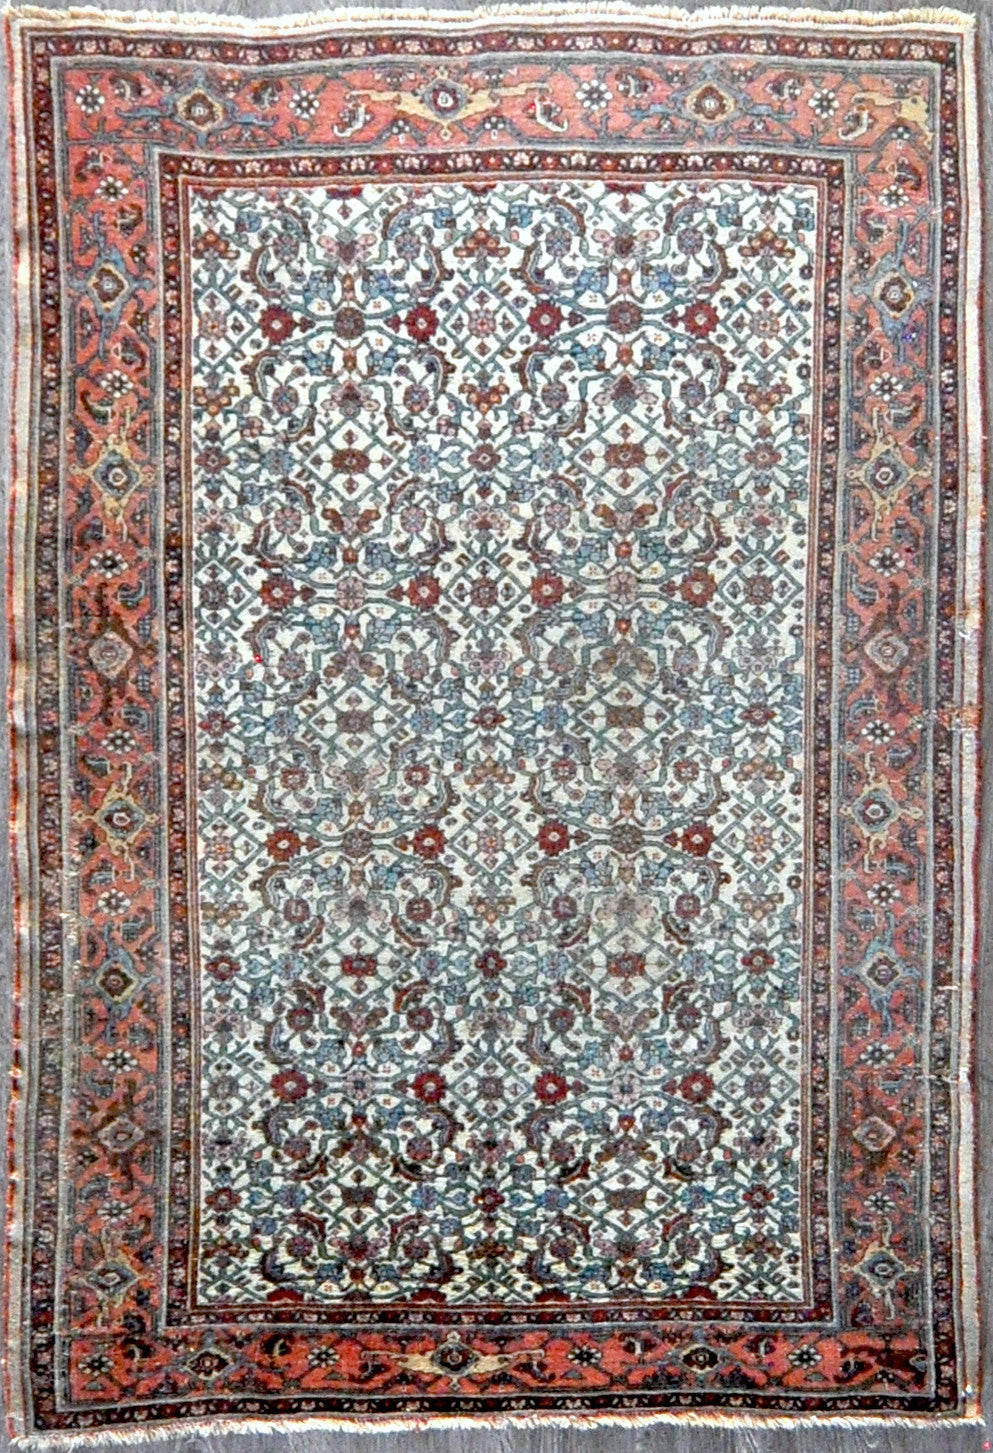 4.9x6.10 Persian antique bijar #90374